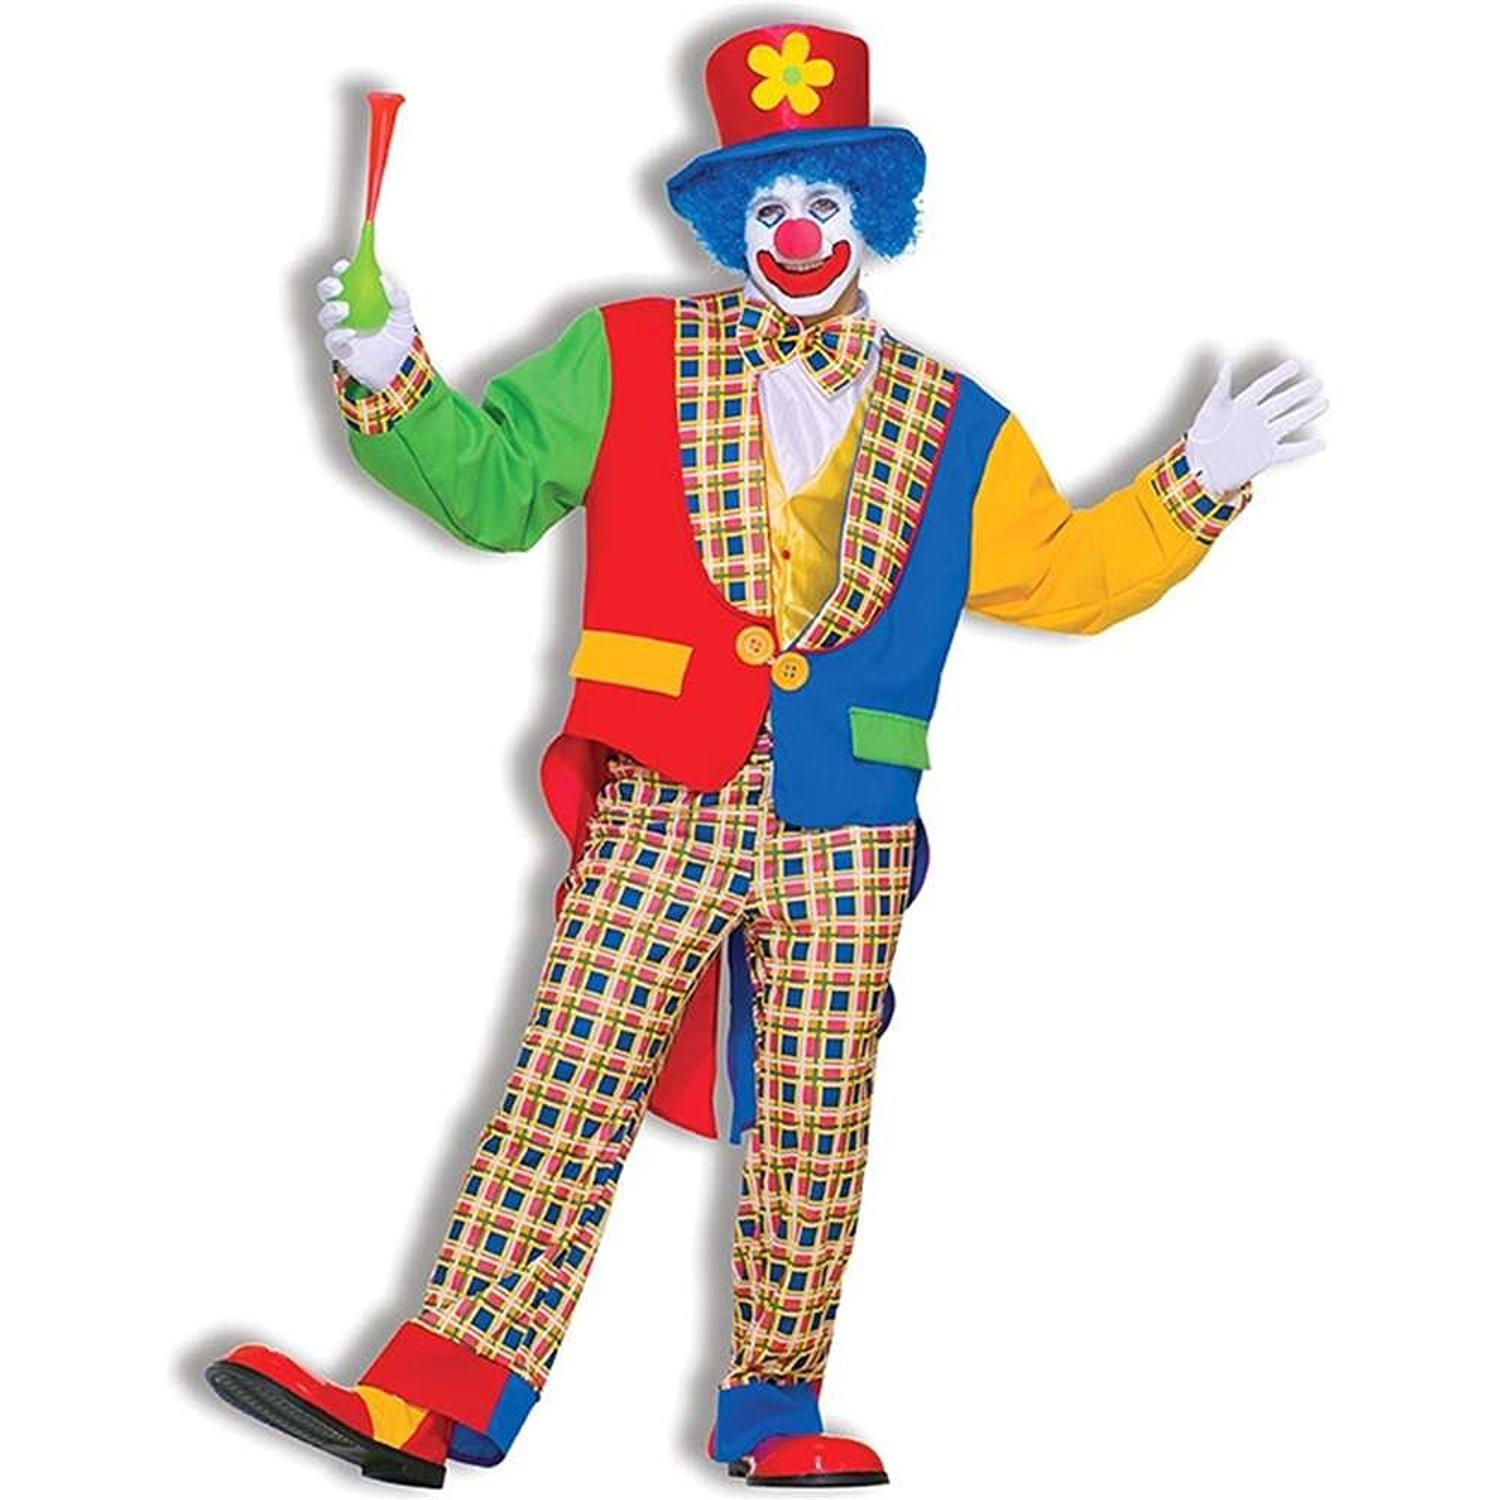 Amazon pluspng.com: Menu0027s Clown On The Town Costume, Blue/Red, One Size: Clothing - Clown PNG